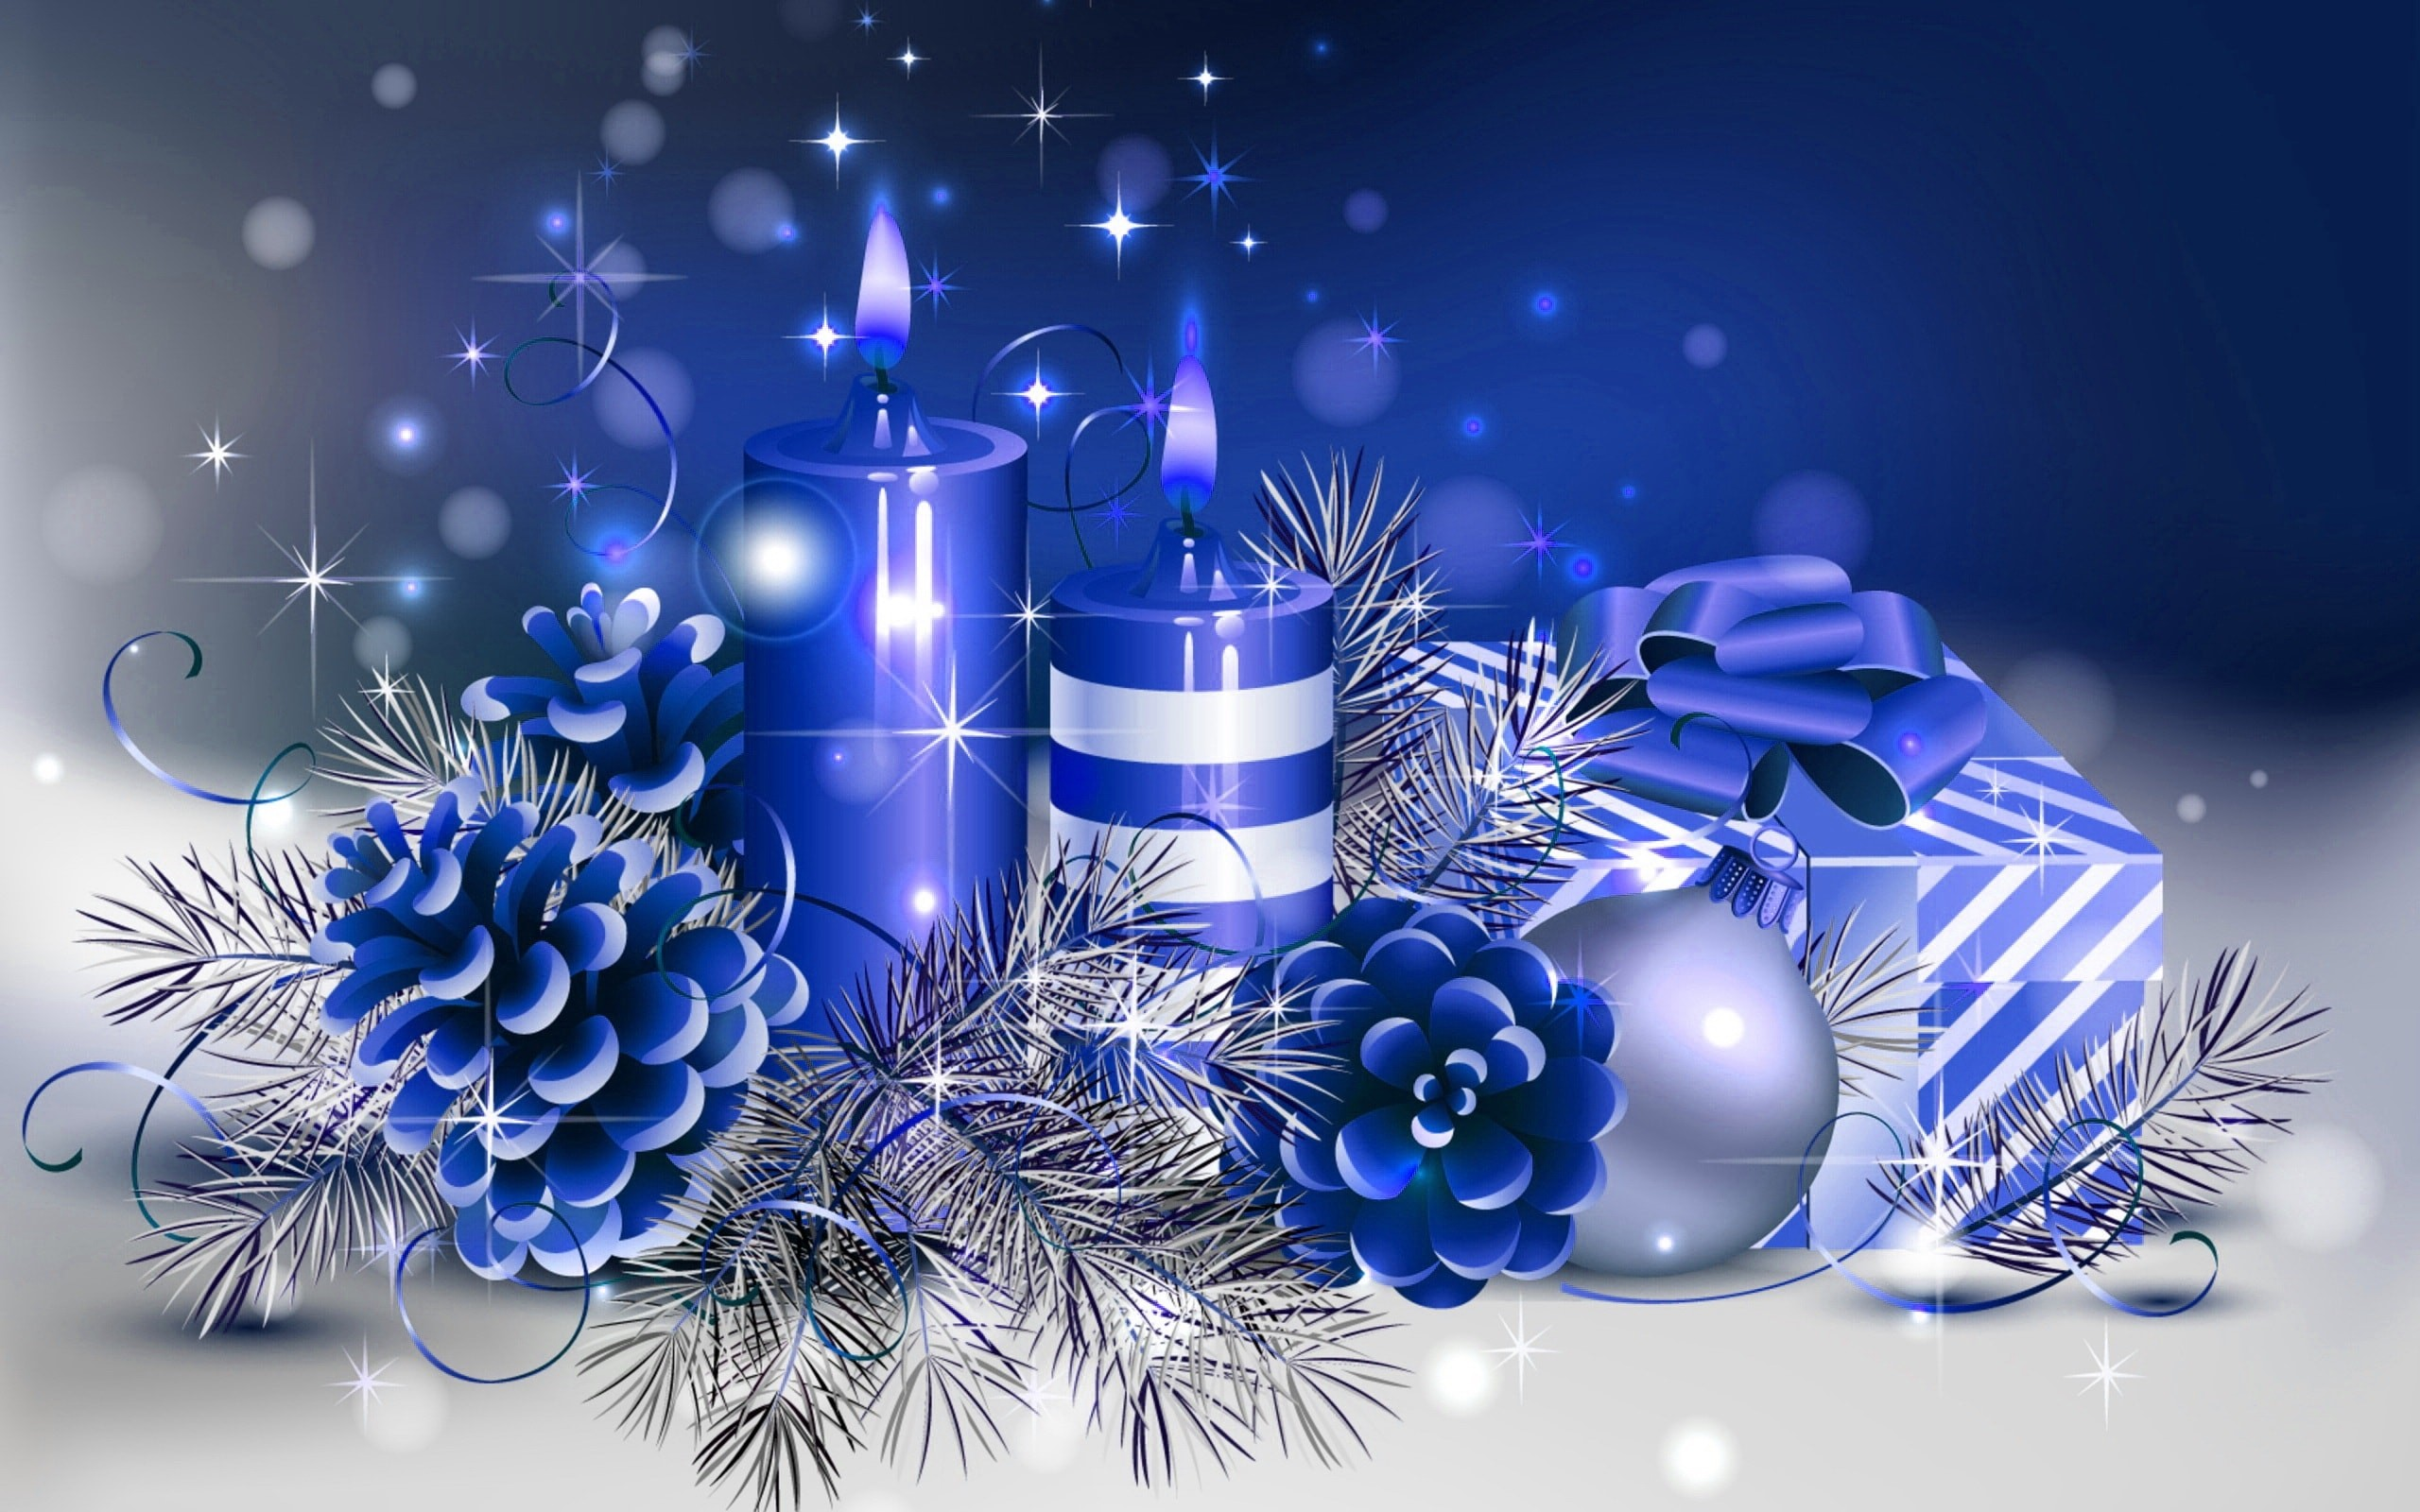 Christmas Exitoc Christmas PC wallpapers